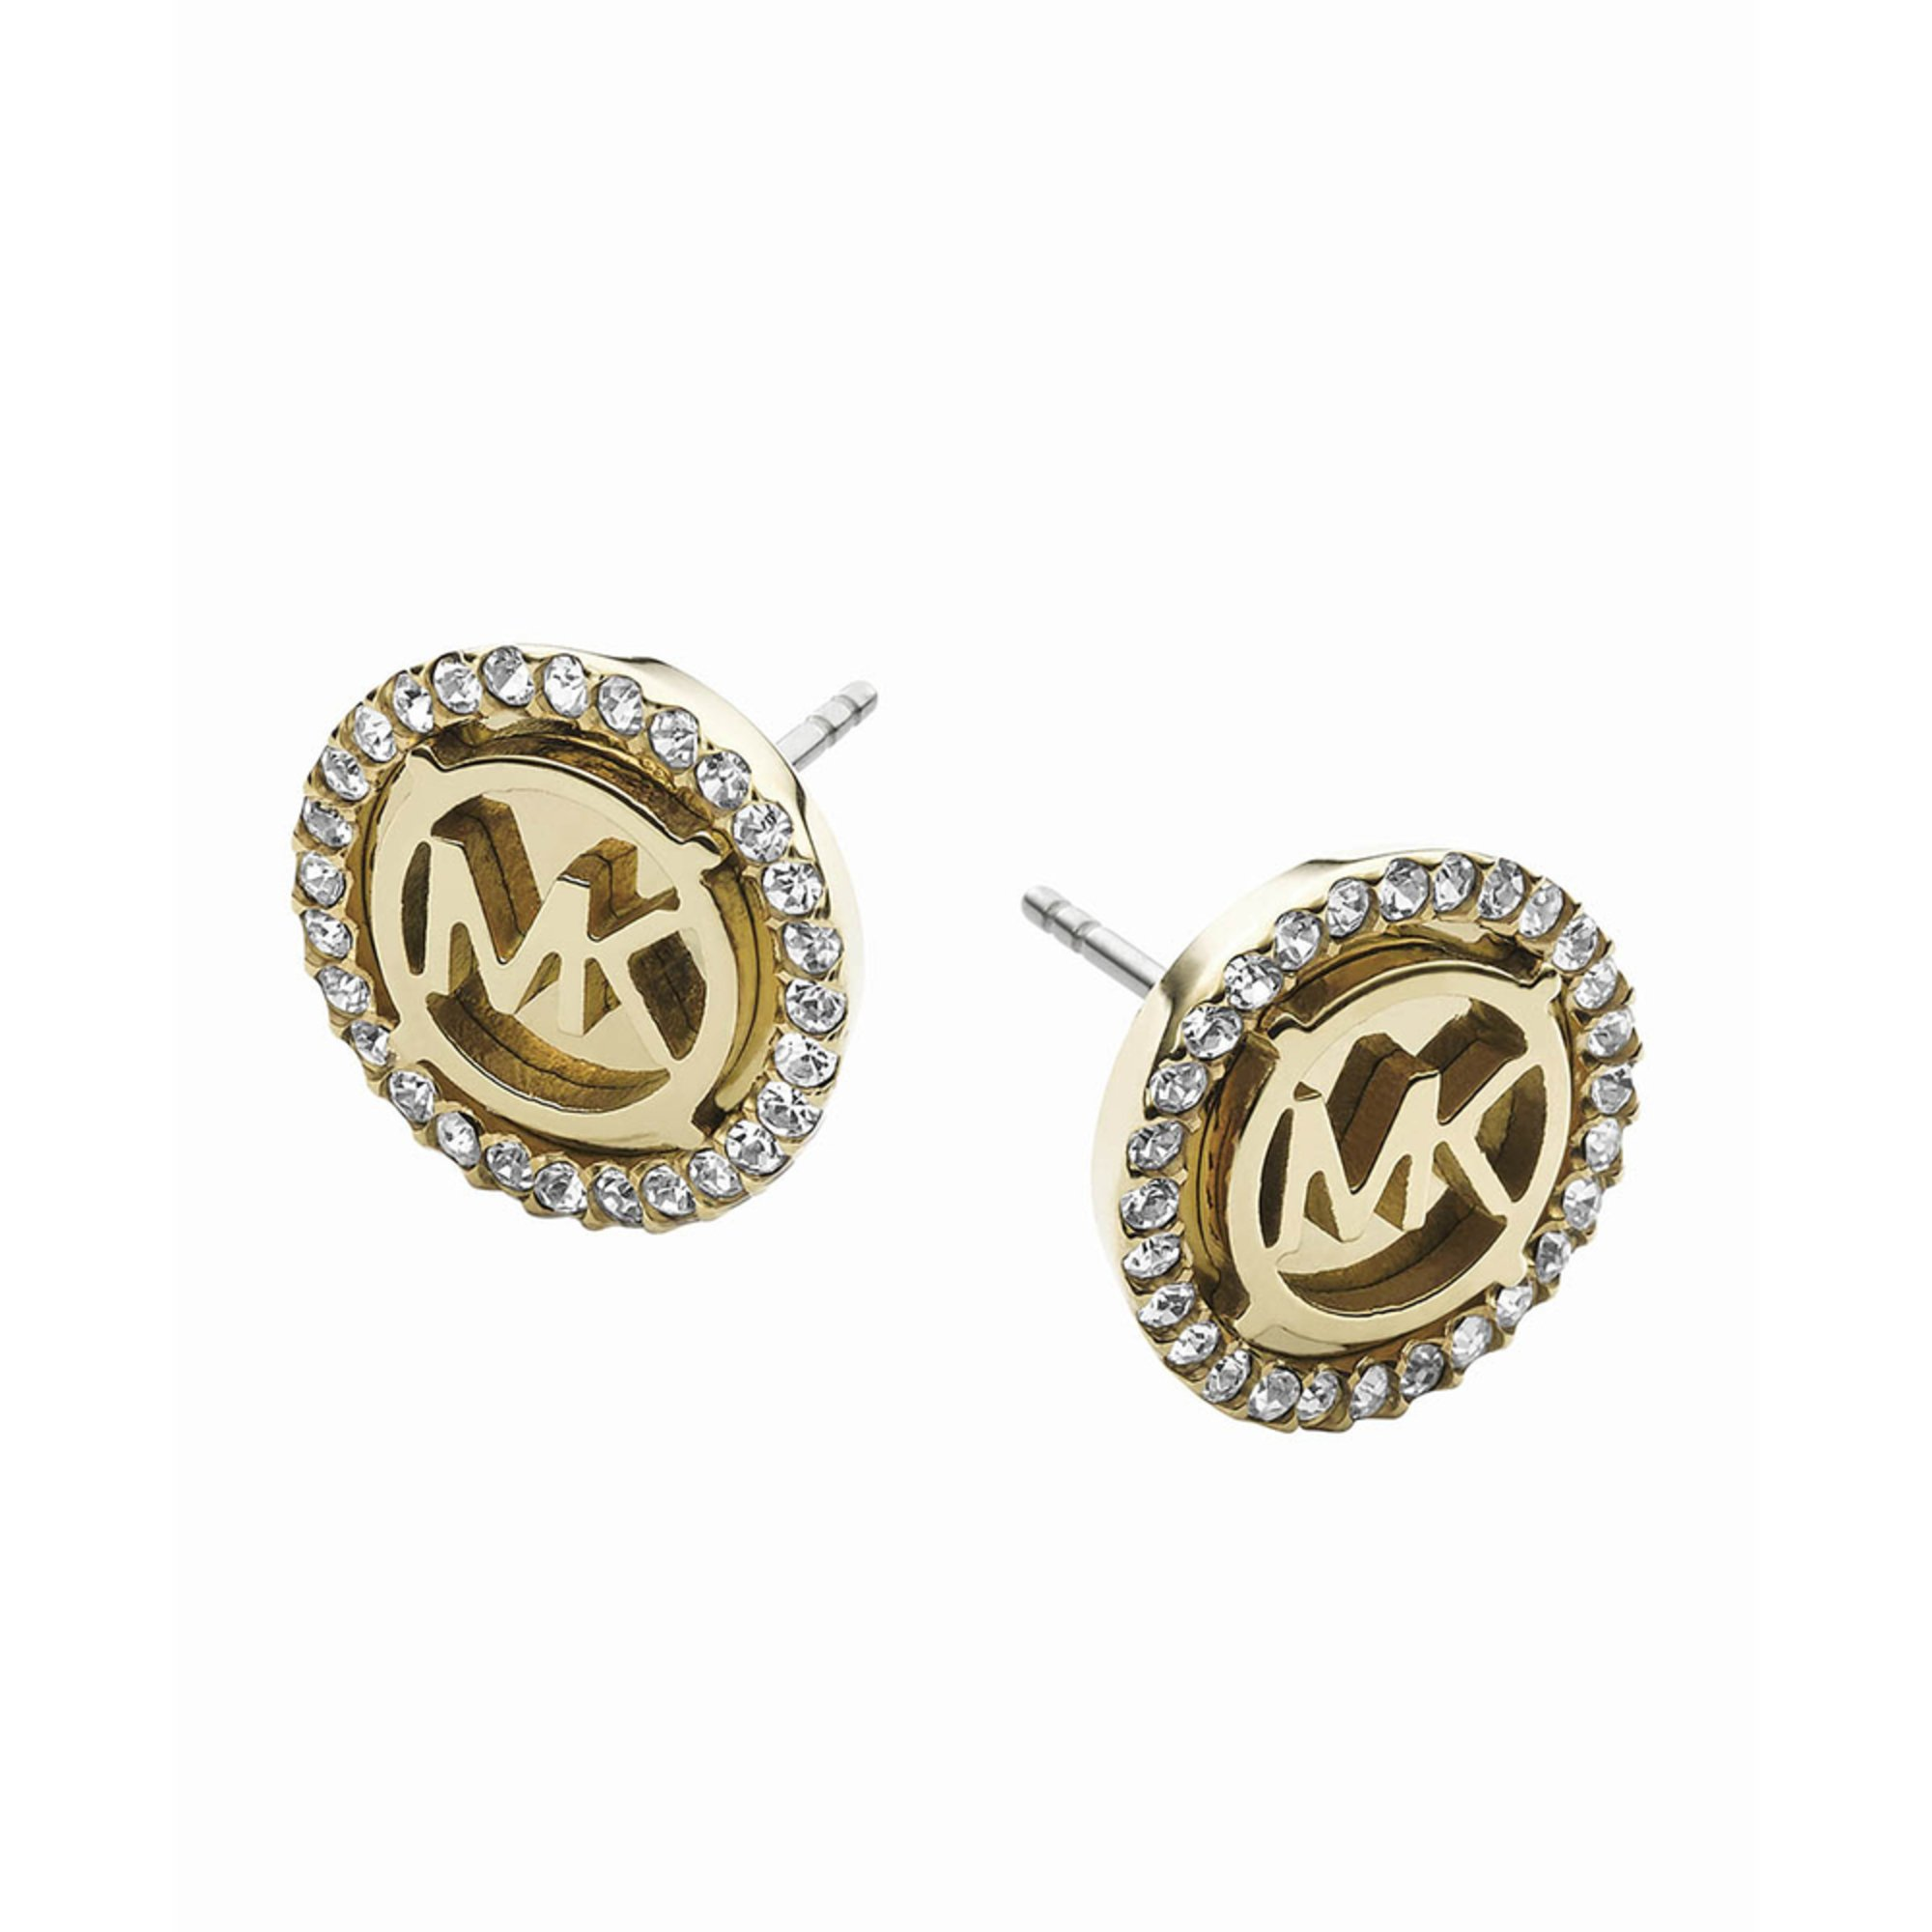 michael kors gold tone mk logo stud earrings fashion. Black Bedroom Furniture Sets. Home Design Ideas